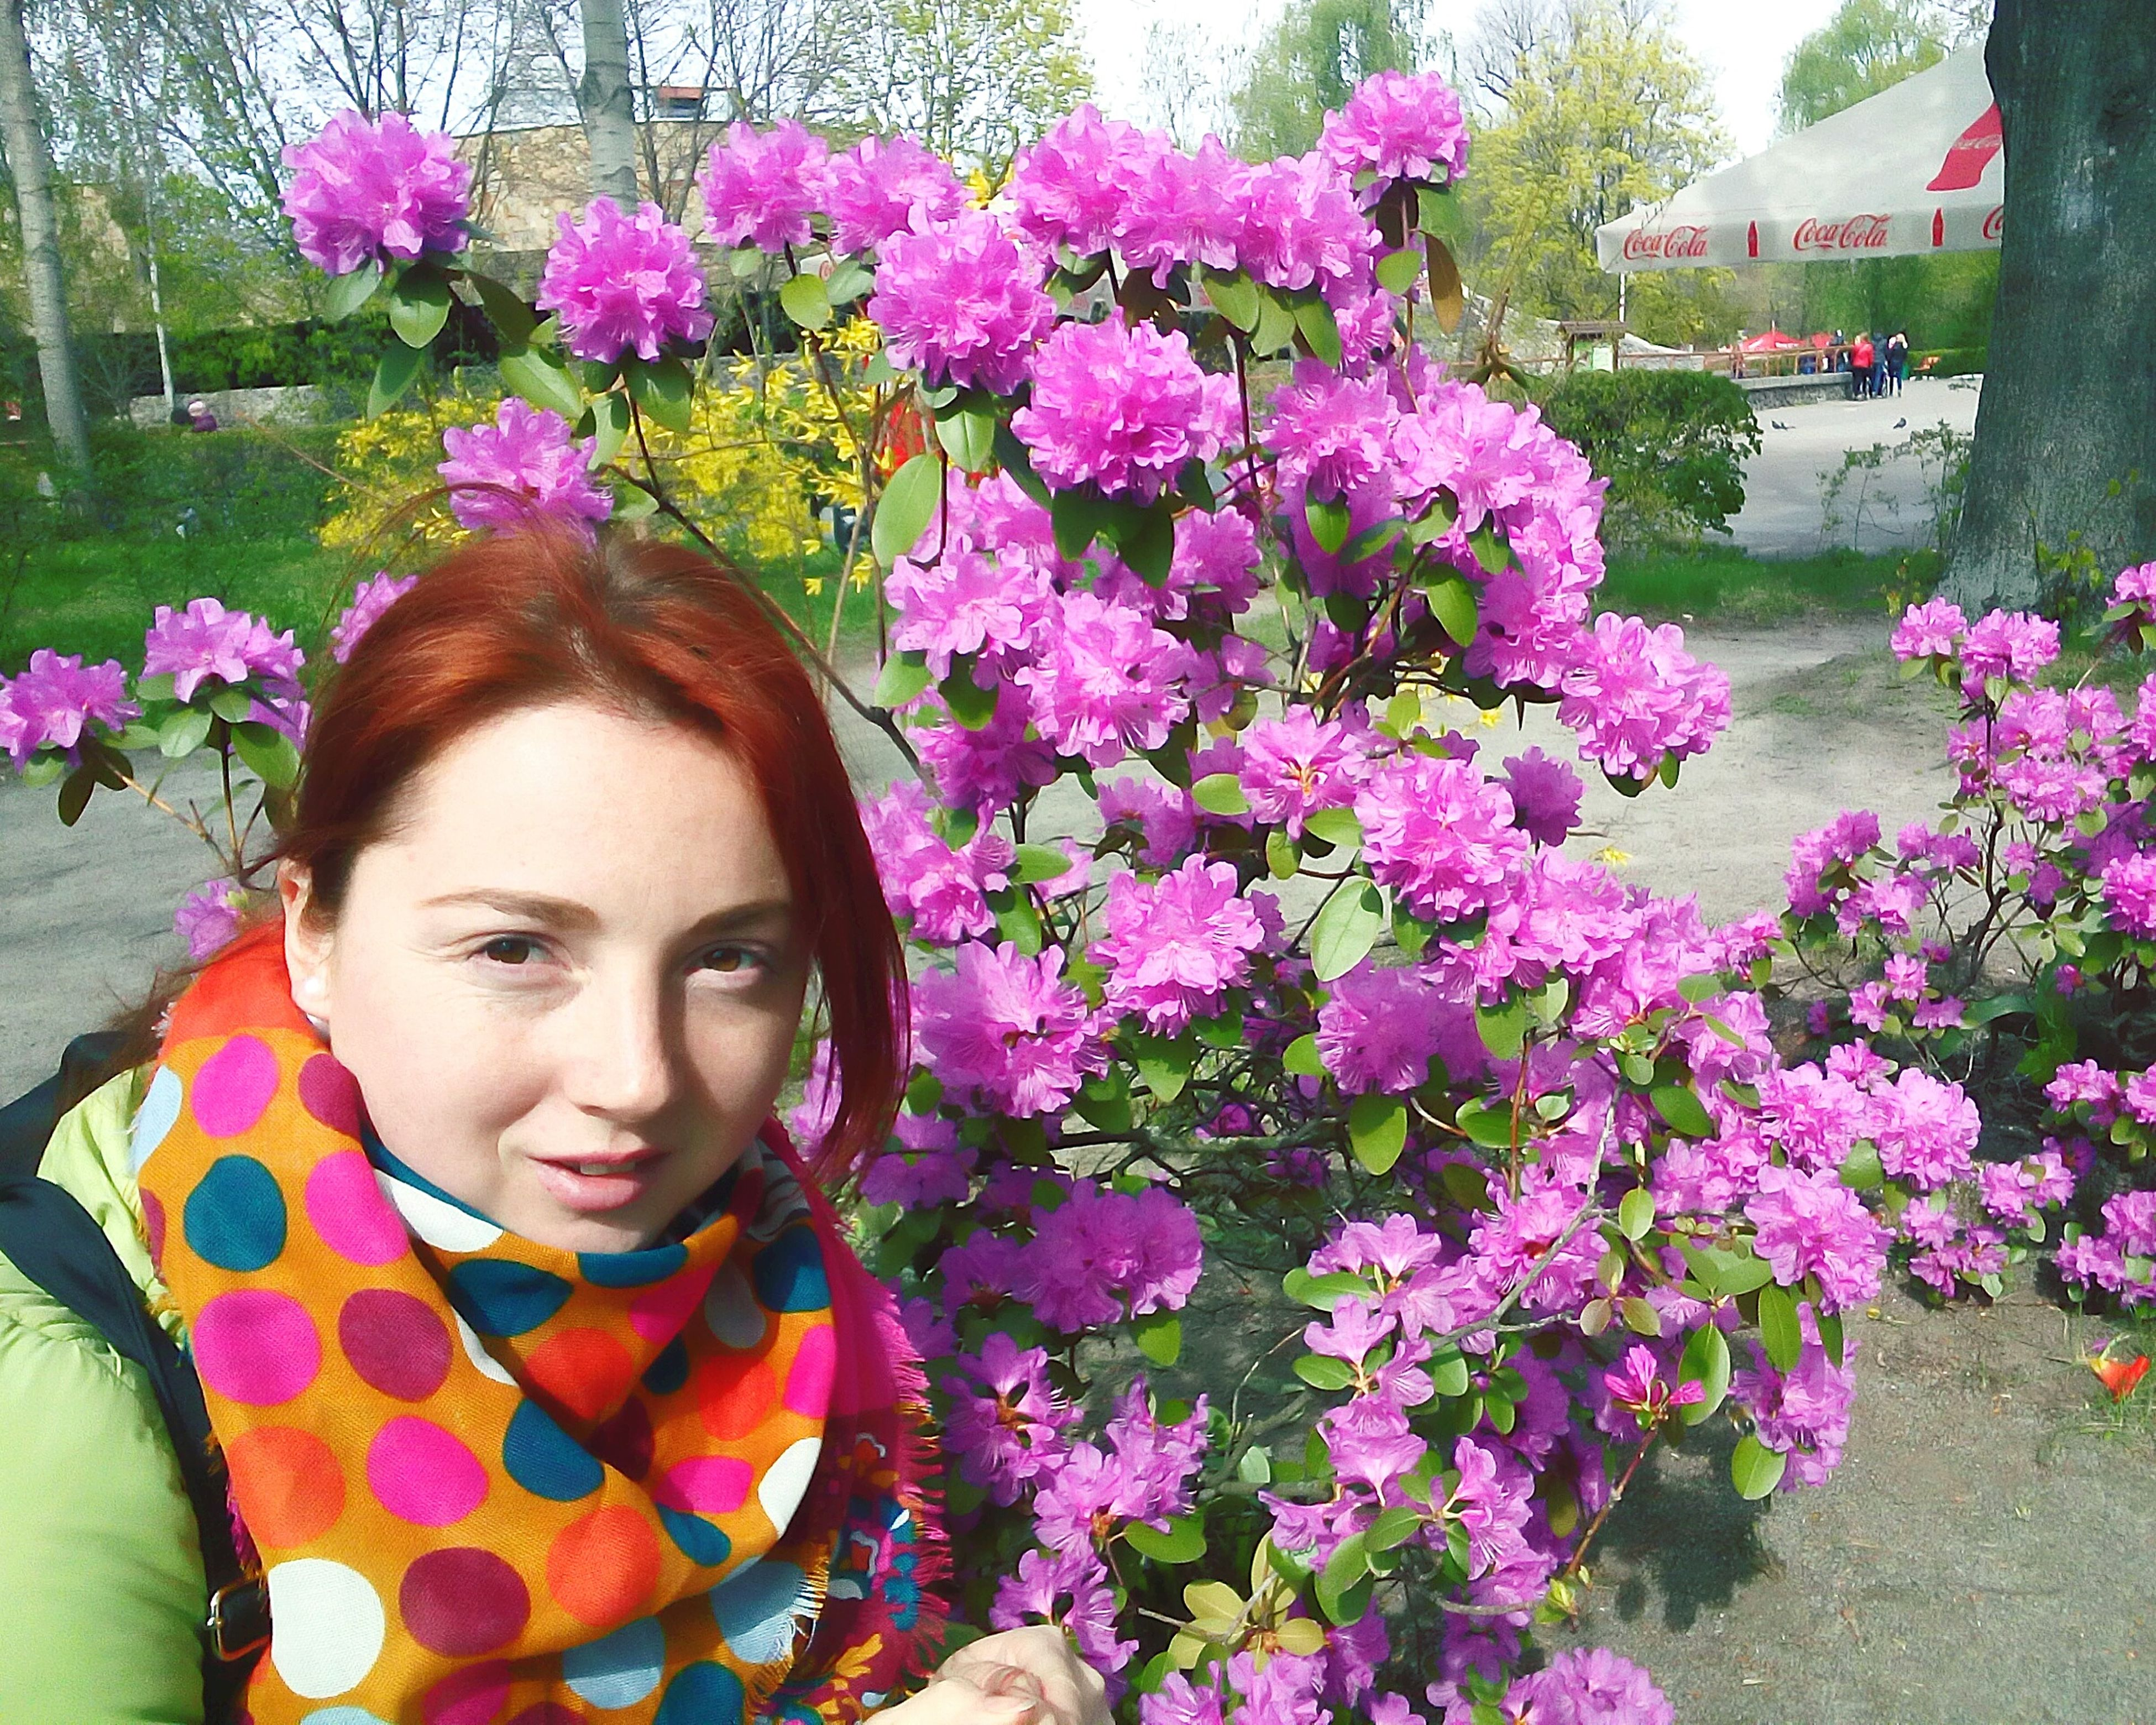 flower, pink color, one person, beautiful woman, front view, beauty, nature, adults only, outdoors, real people, only women, close-up, beauty in nature, freshness, adult, day, one woman only, people, young adult